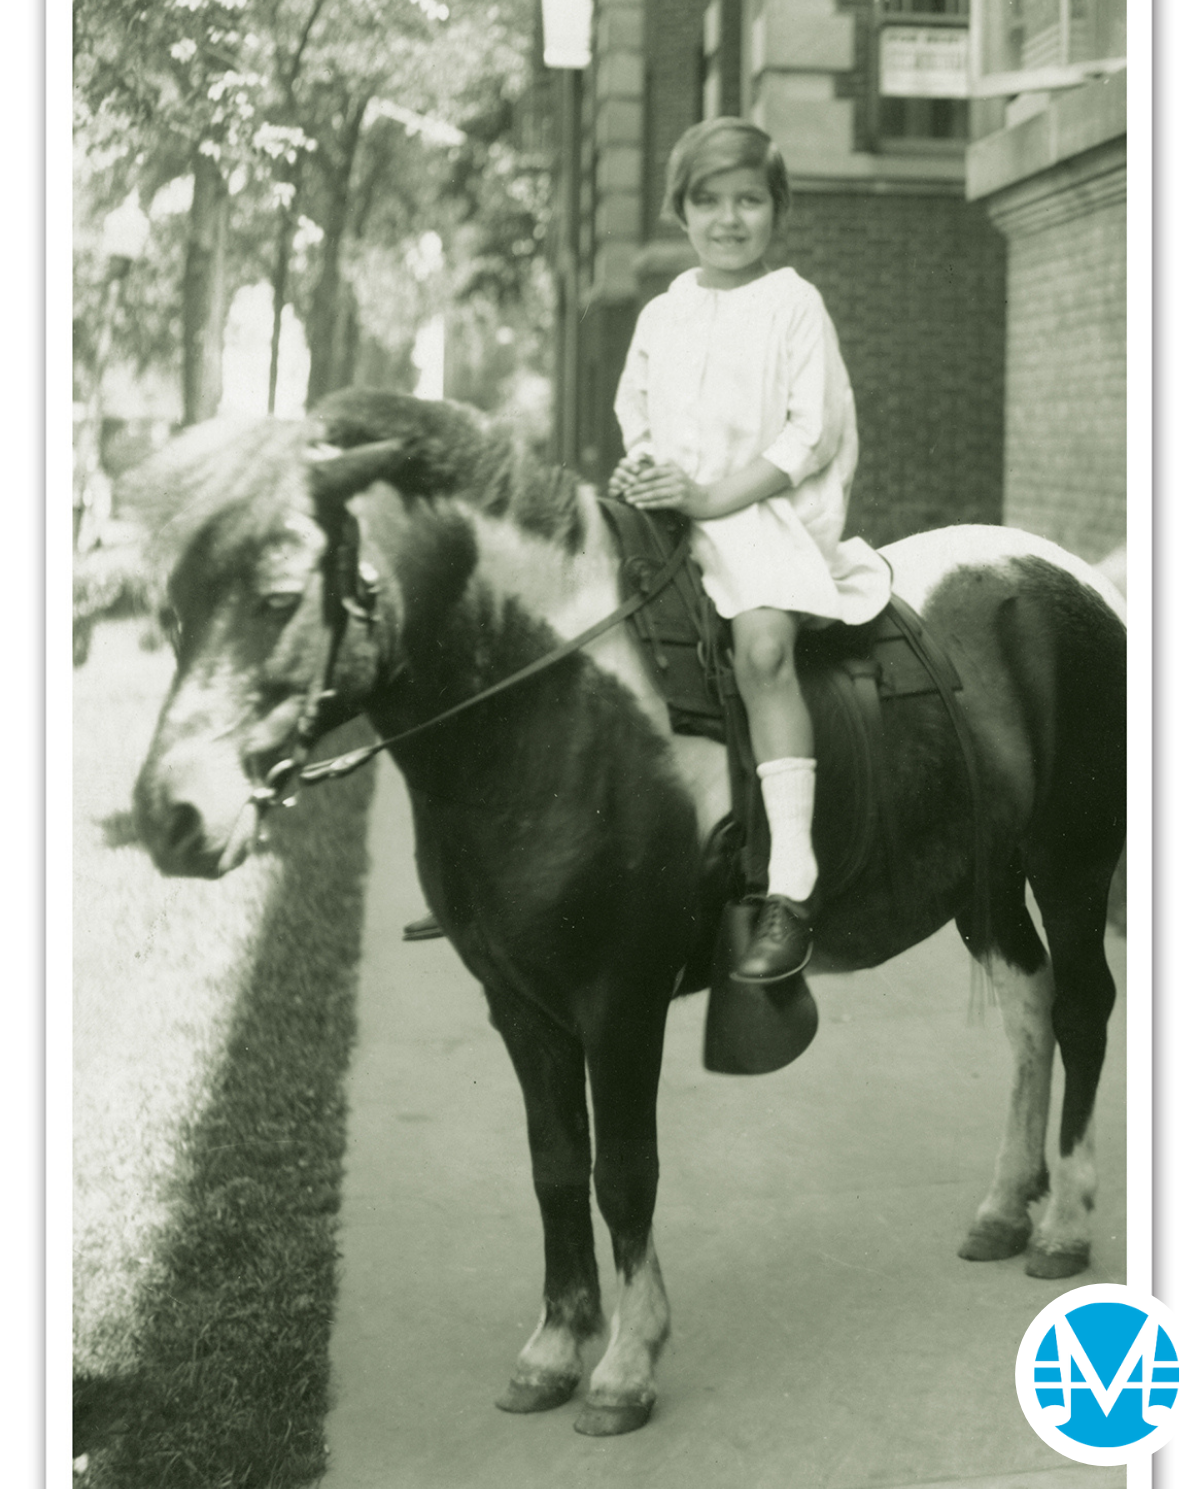 Gus Kahn's daughter, Irene, on a horse.